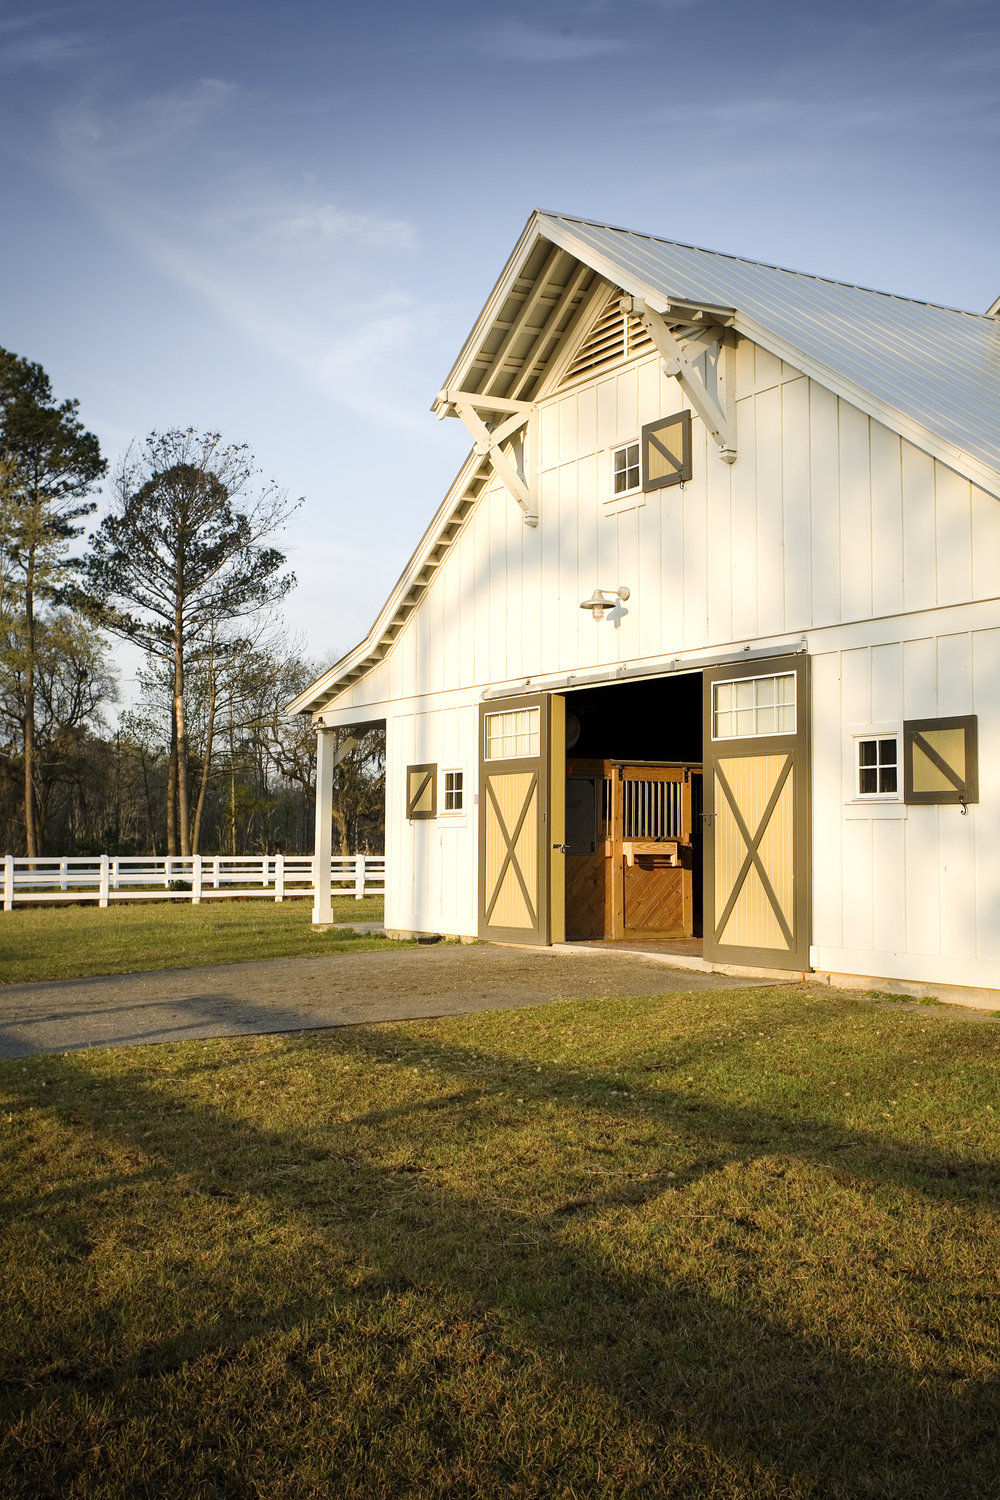 SCAD Ronald C Waranch Equestrian Center  Hardeeville SC  Dawson Wissmach   Back to Portfolios